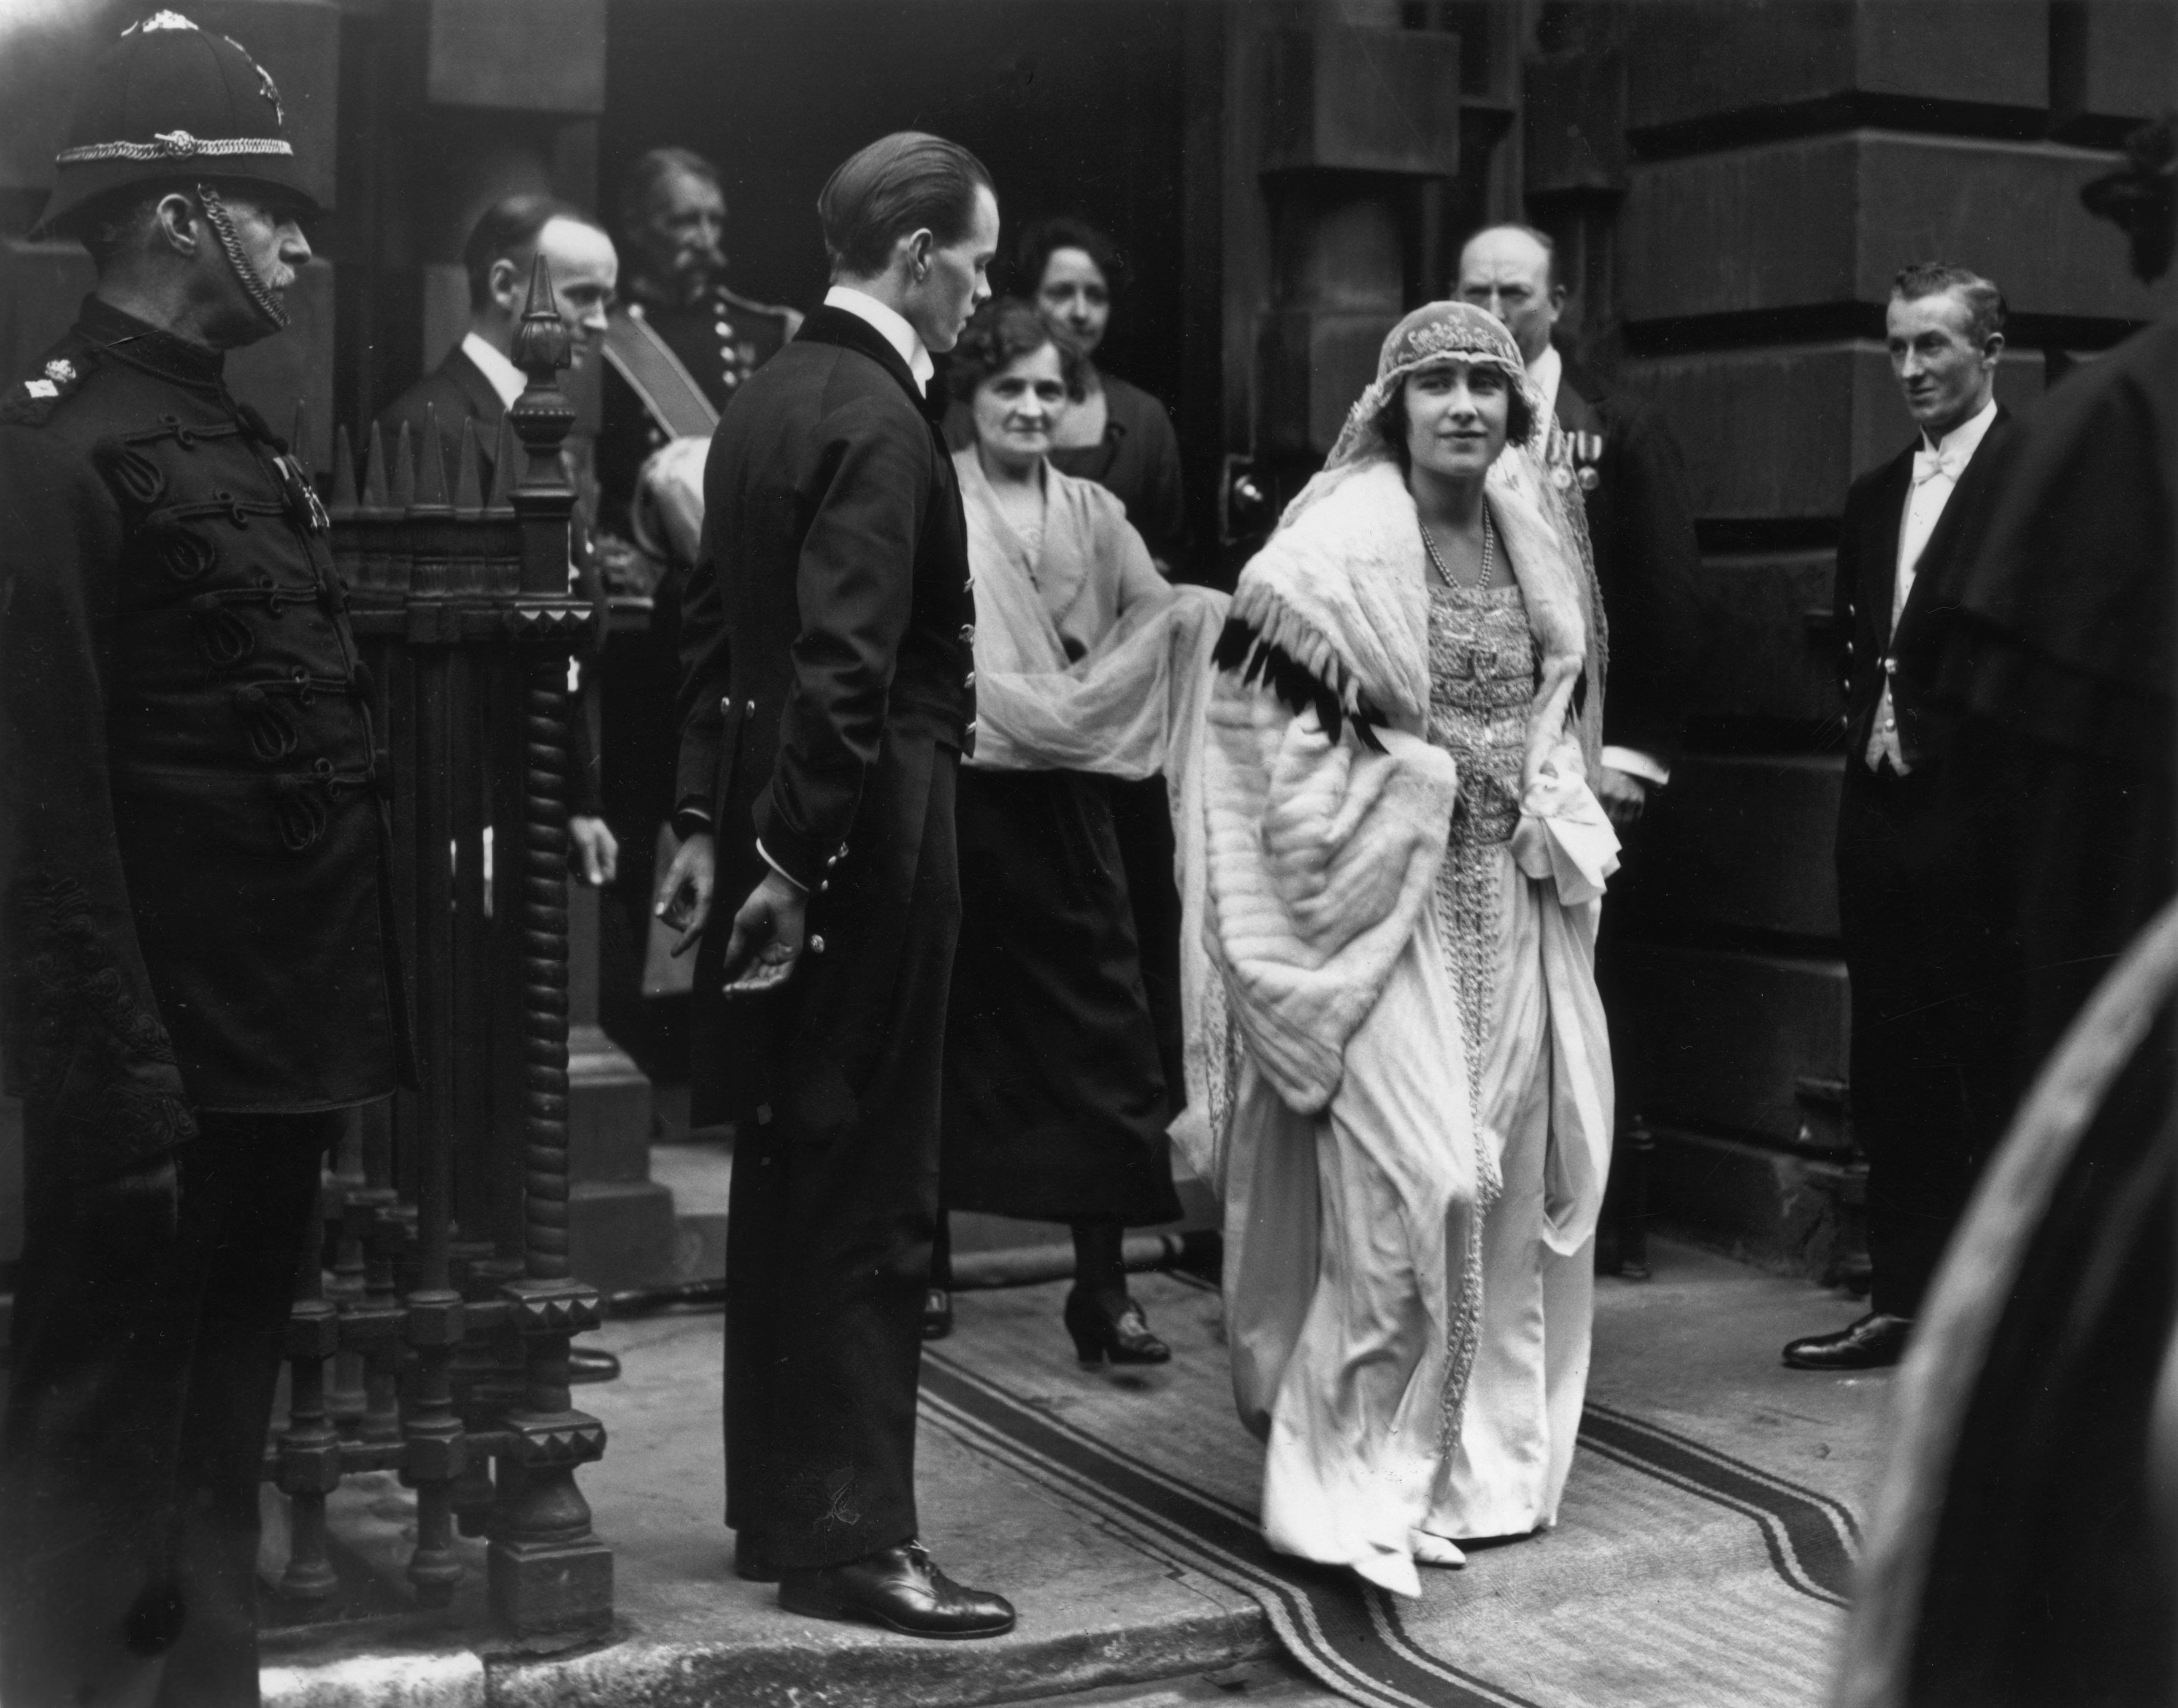 26th April 1923: Future Queen Consort to King George VI, Lady Elizabeth Bowes-Lyon (1900 - 2002) leaving her Bruton Street residence for her wedding to George, Duke Of York. (Photo by Topical Press Agency/Getty Images)